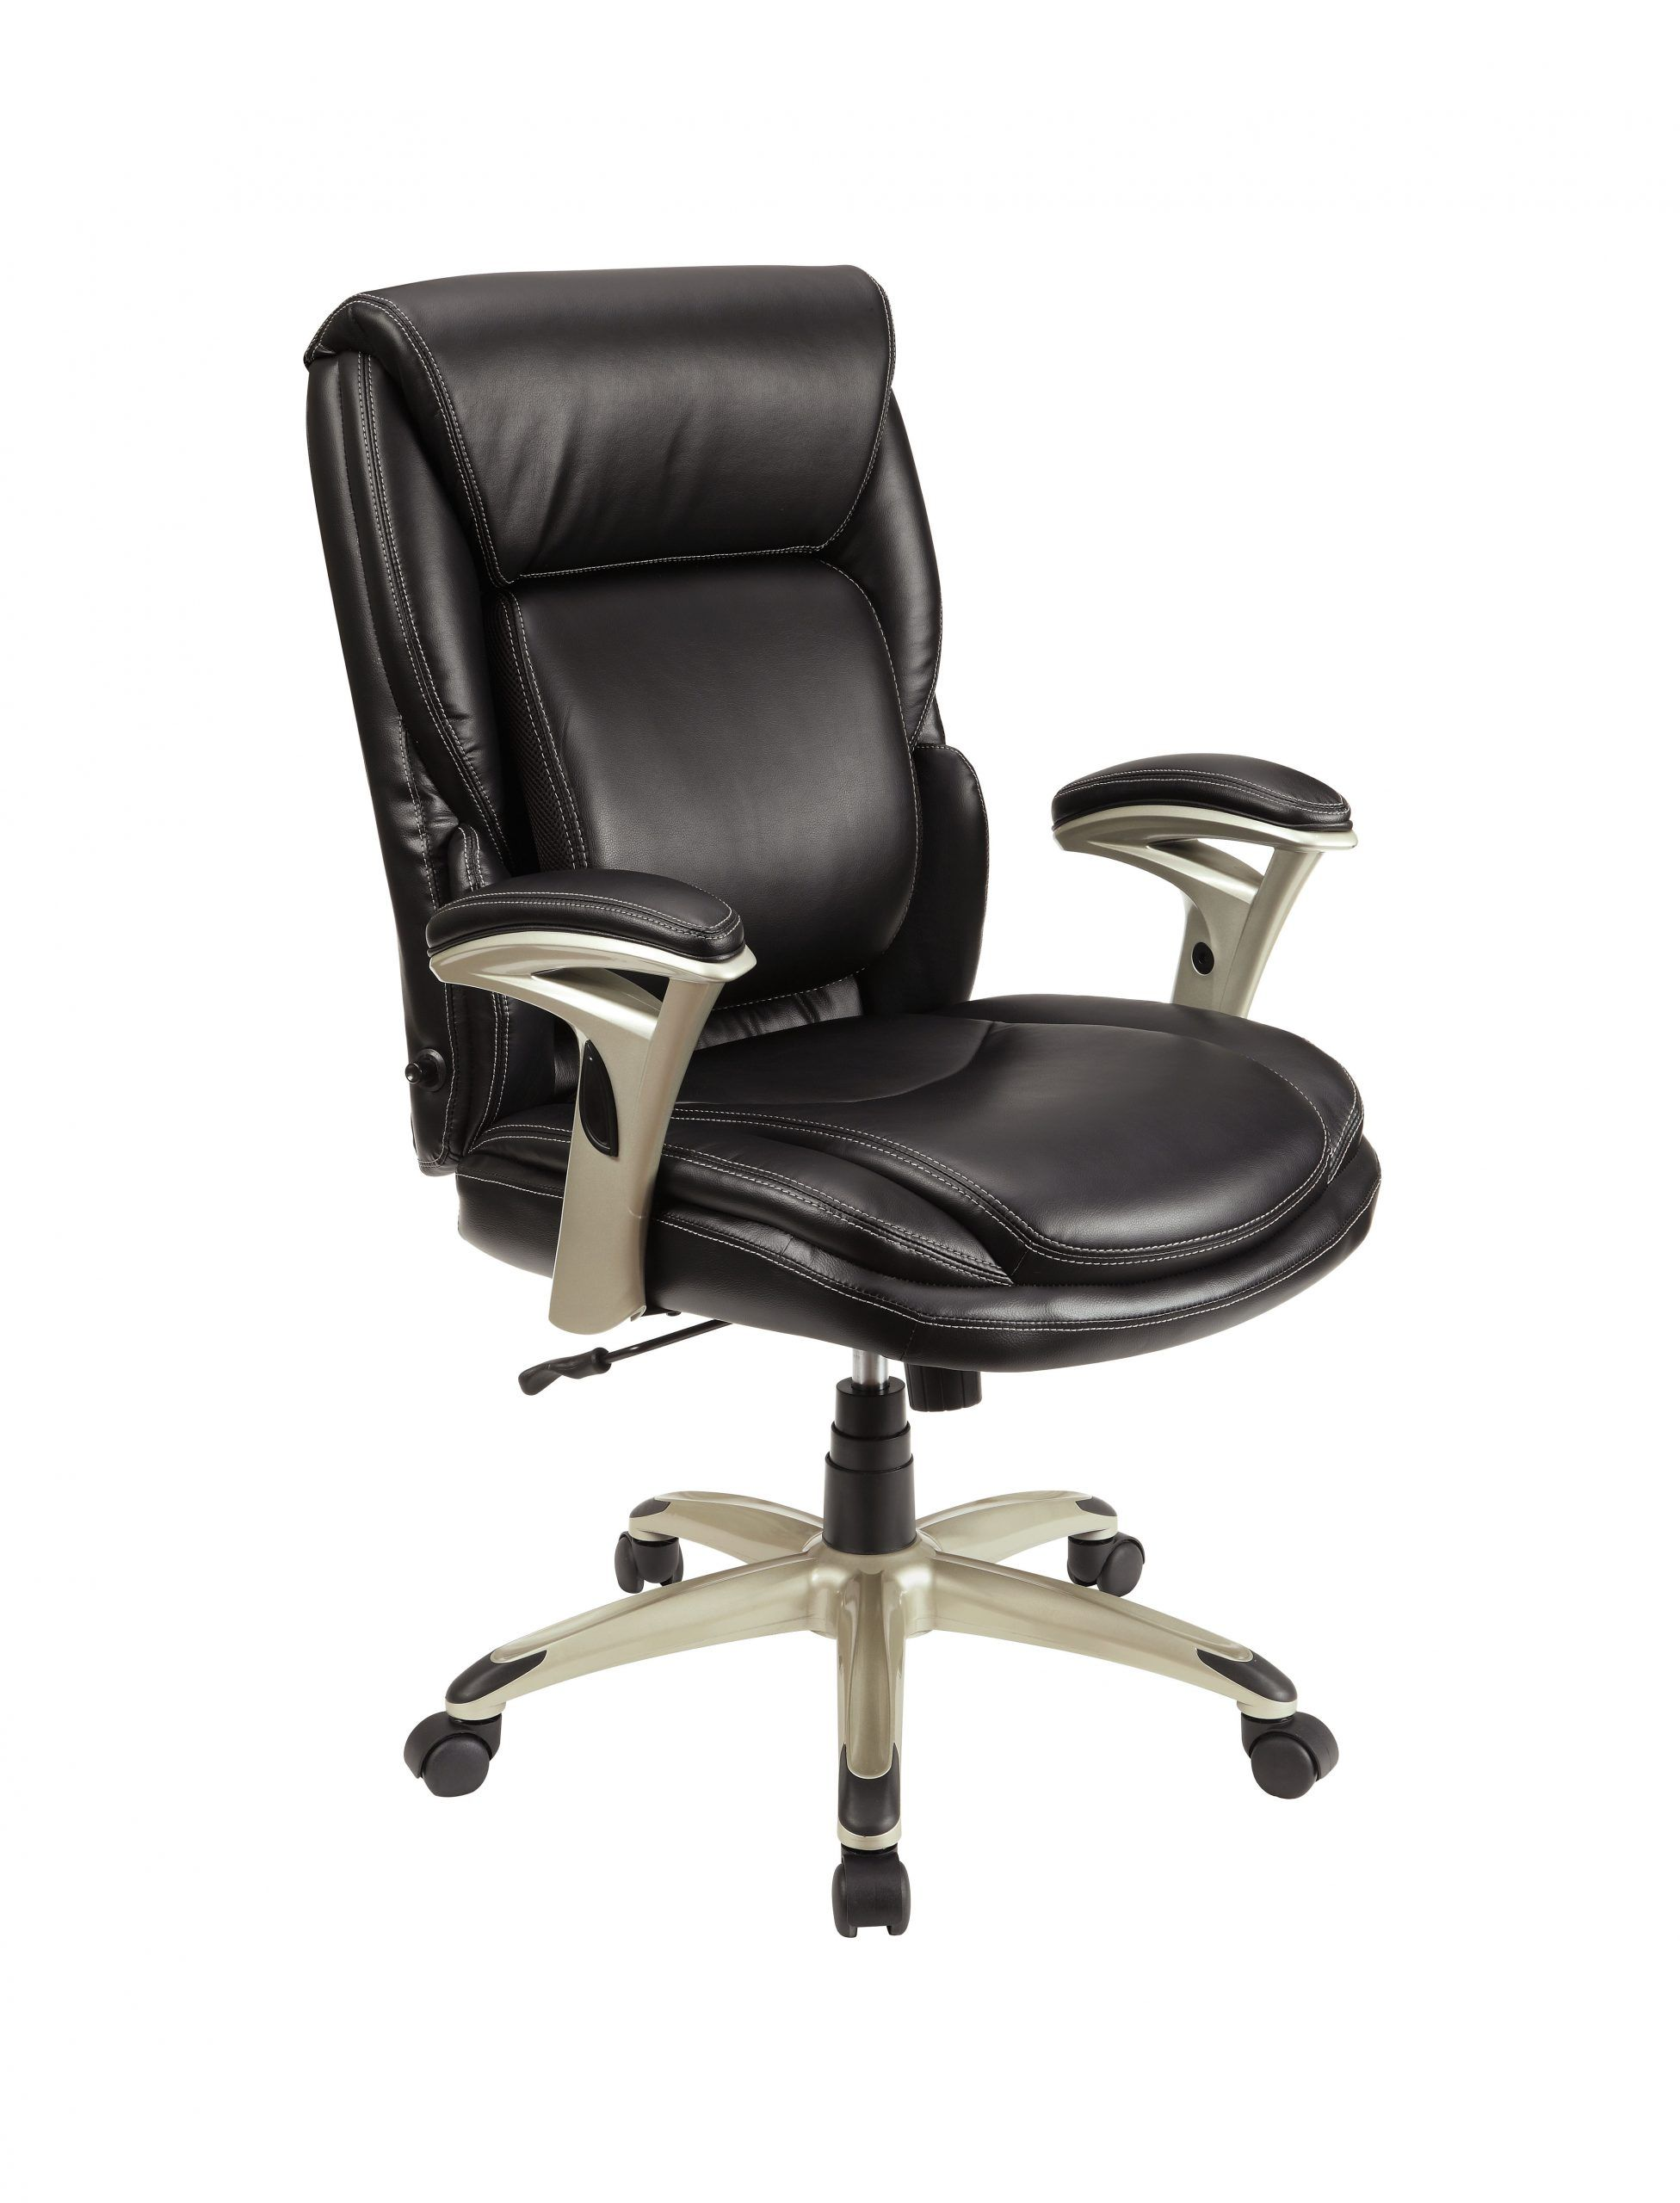 Back Support For Office Chair Walmart 2021 In 2020 Best Office Chair Office Chair Tall Office Chairs